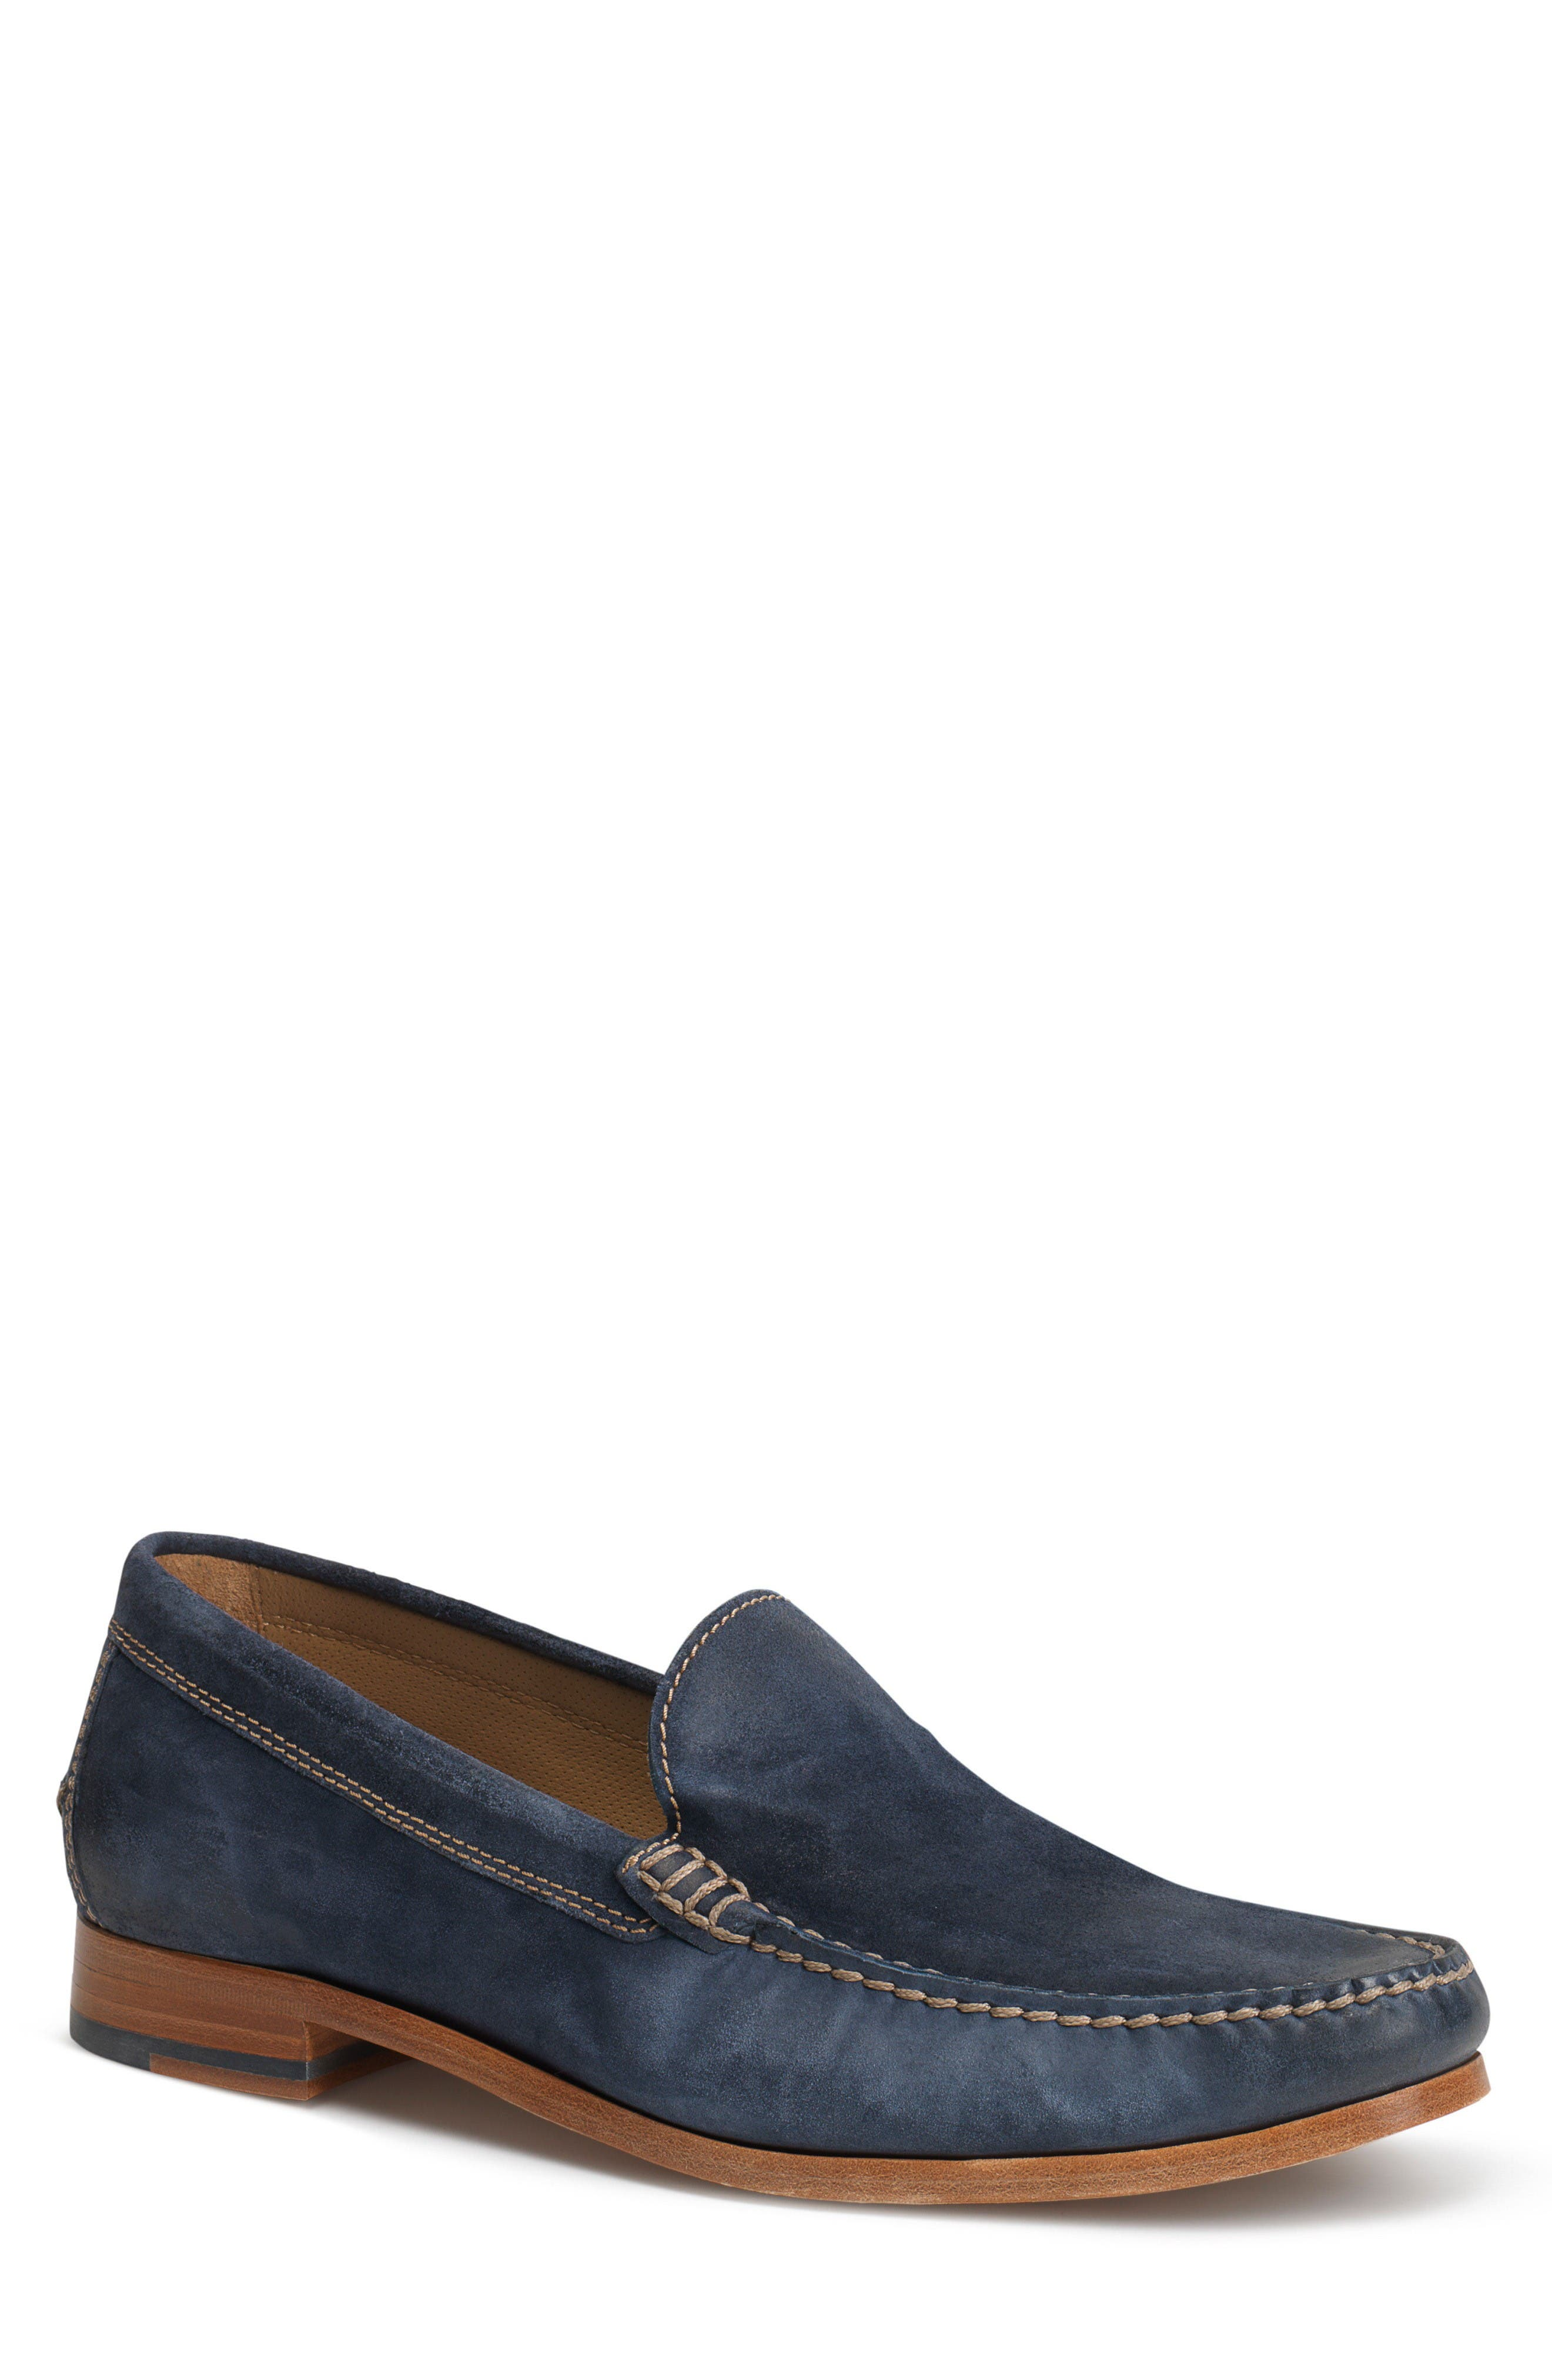 TRASK Seymour Loafer